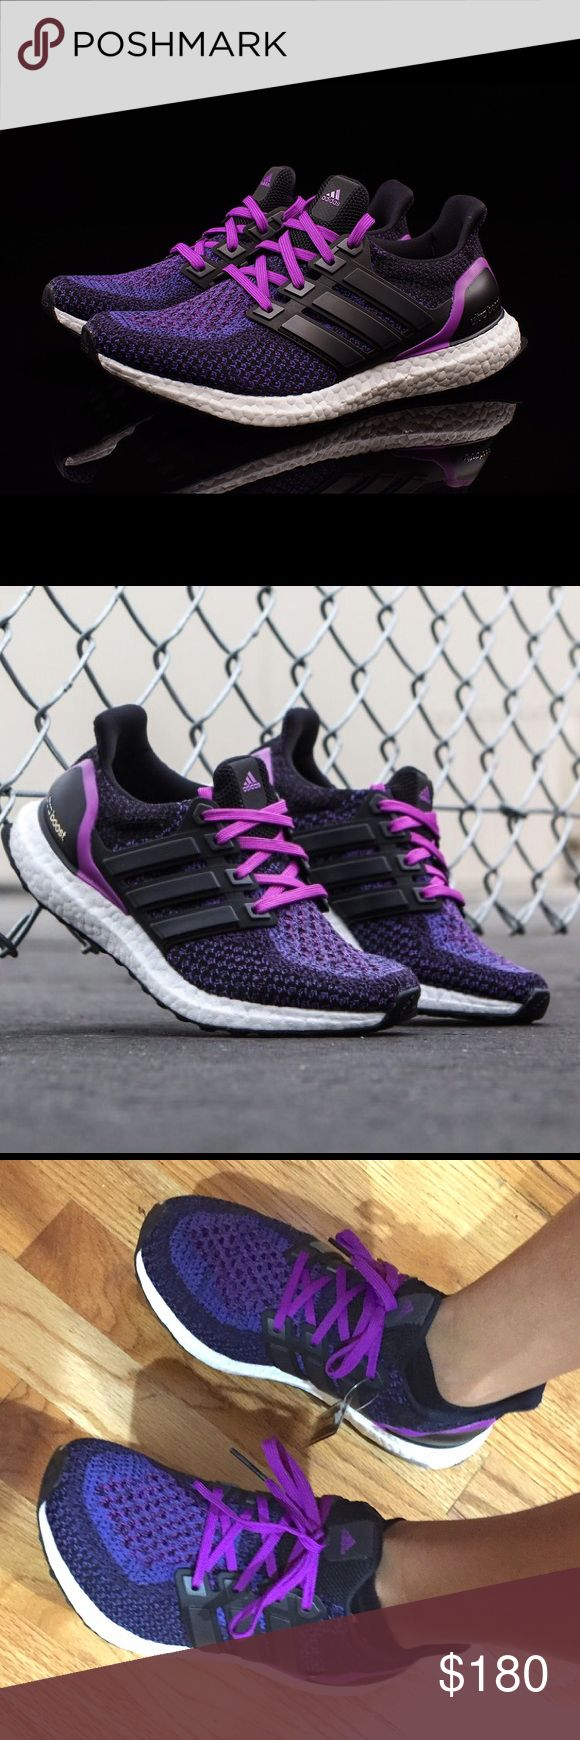 Nordstrom Adidas ultra boost women purple 8 Have receipt from Nordstrom basically new worn around house but too big for my feet.  Paid 196 including tax. Includes box and receipt upon request.  This is for a size 8. Color is called black / ice blue.  Excellent condition 10/10. adidas Shoes Athletic Shoes